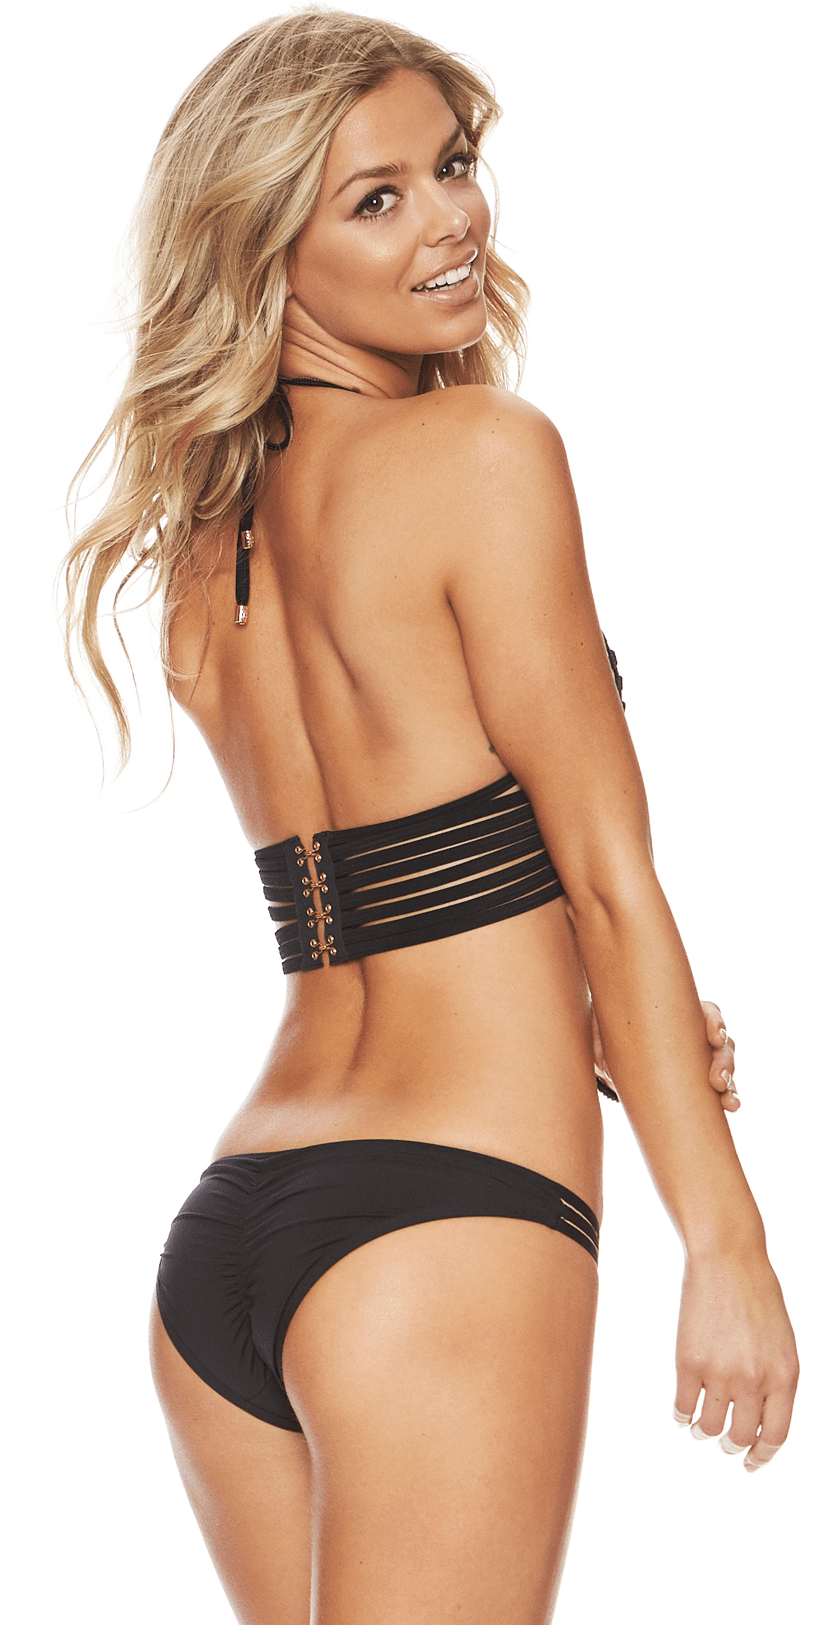 Beach Bunny Hard Summer Skimpy Bikini Bottom in Black  B16104B1-BLK: